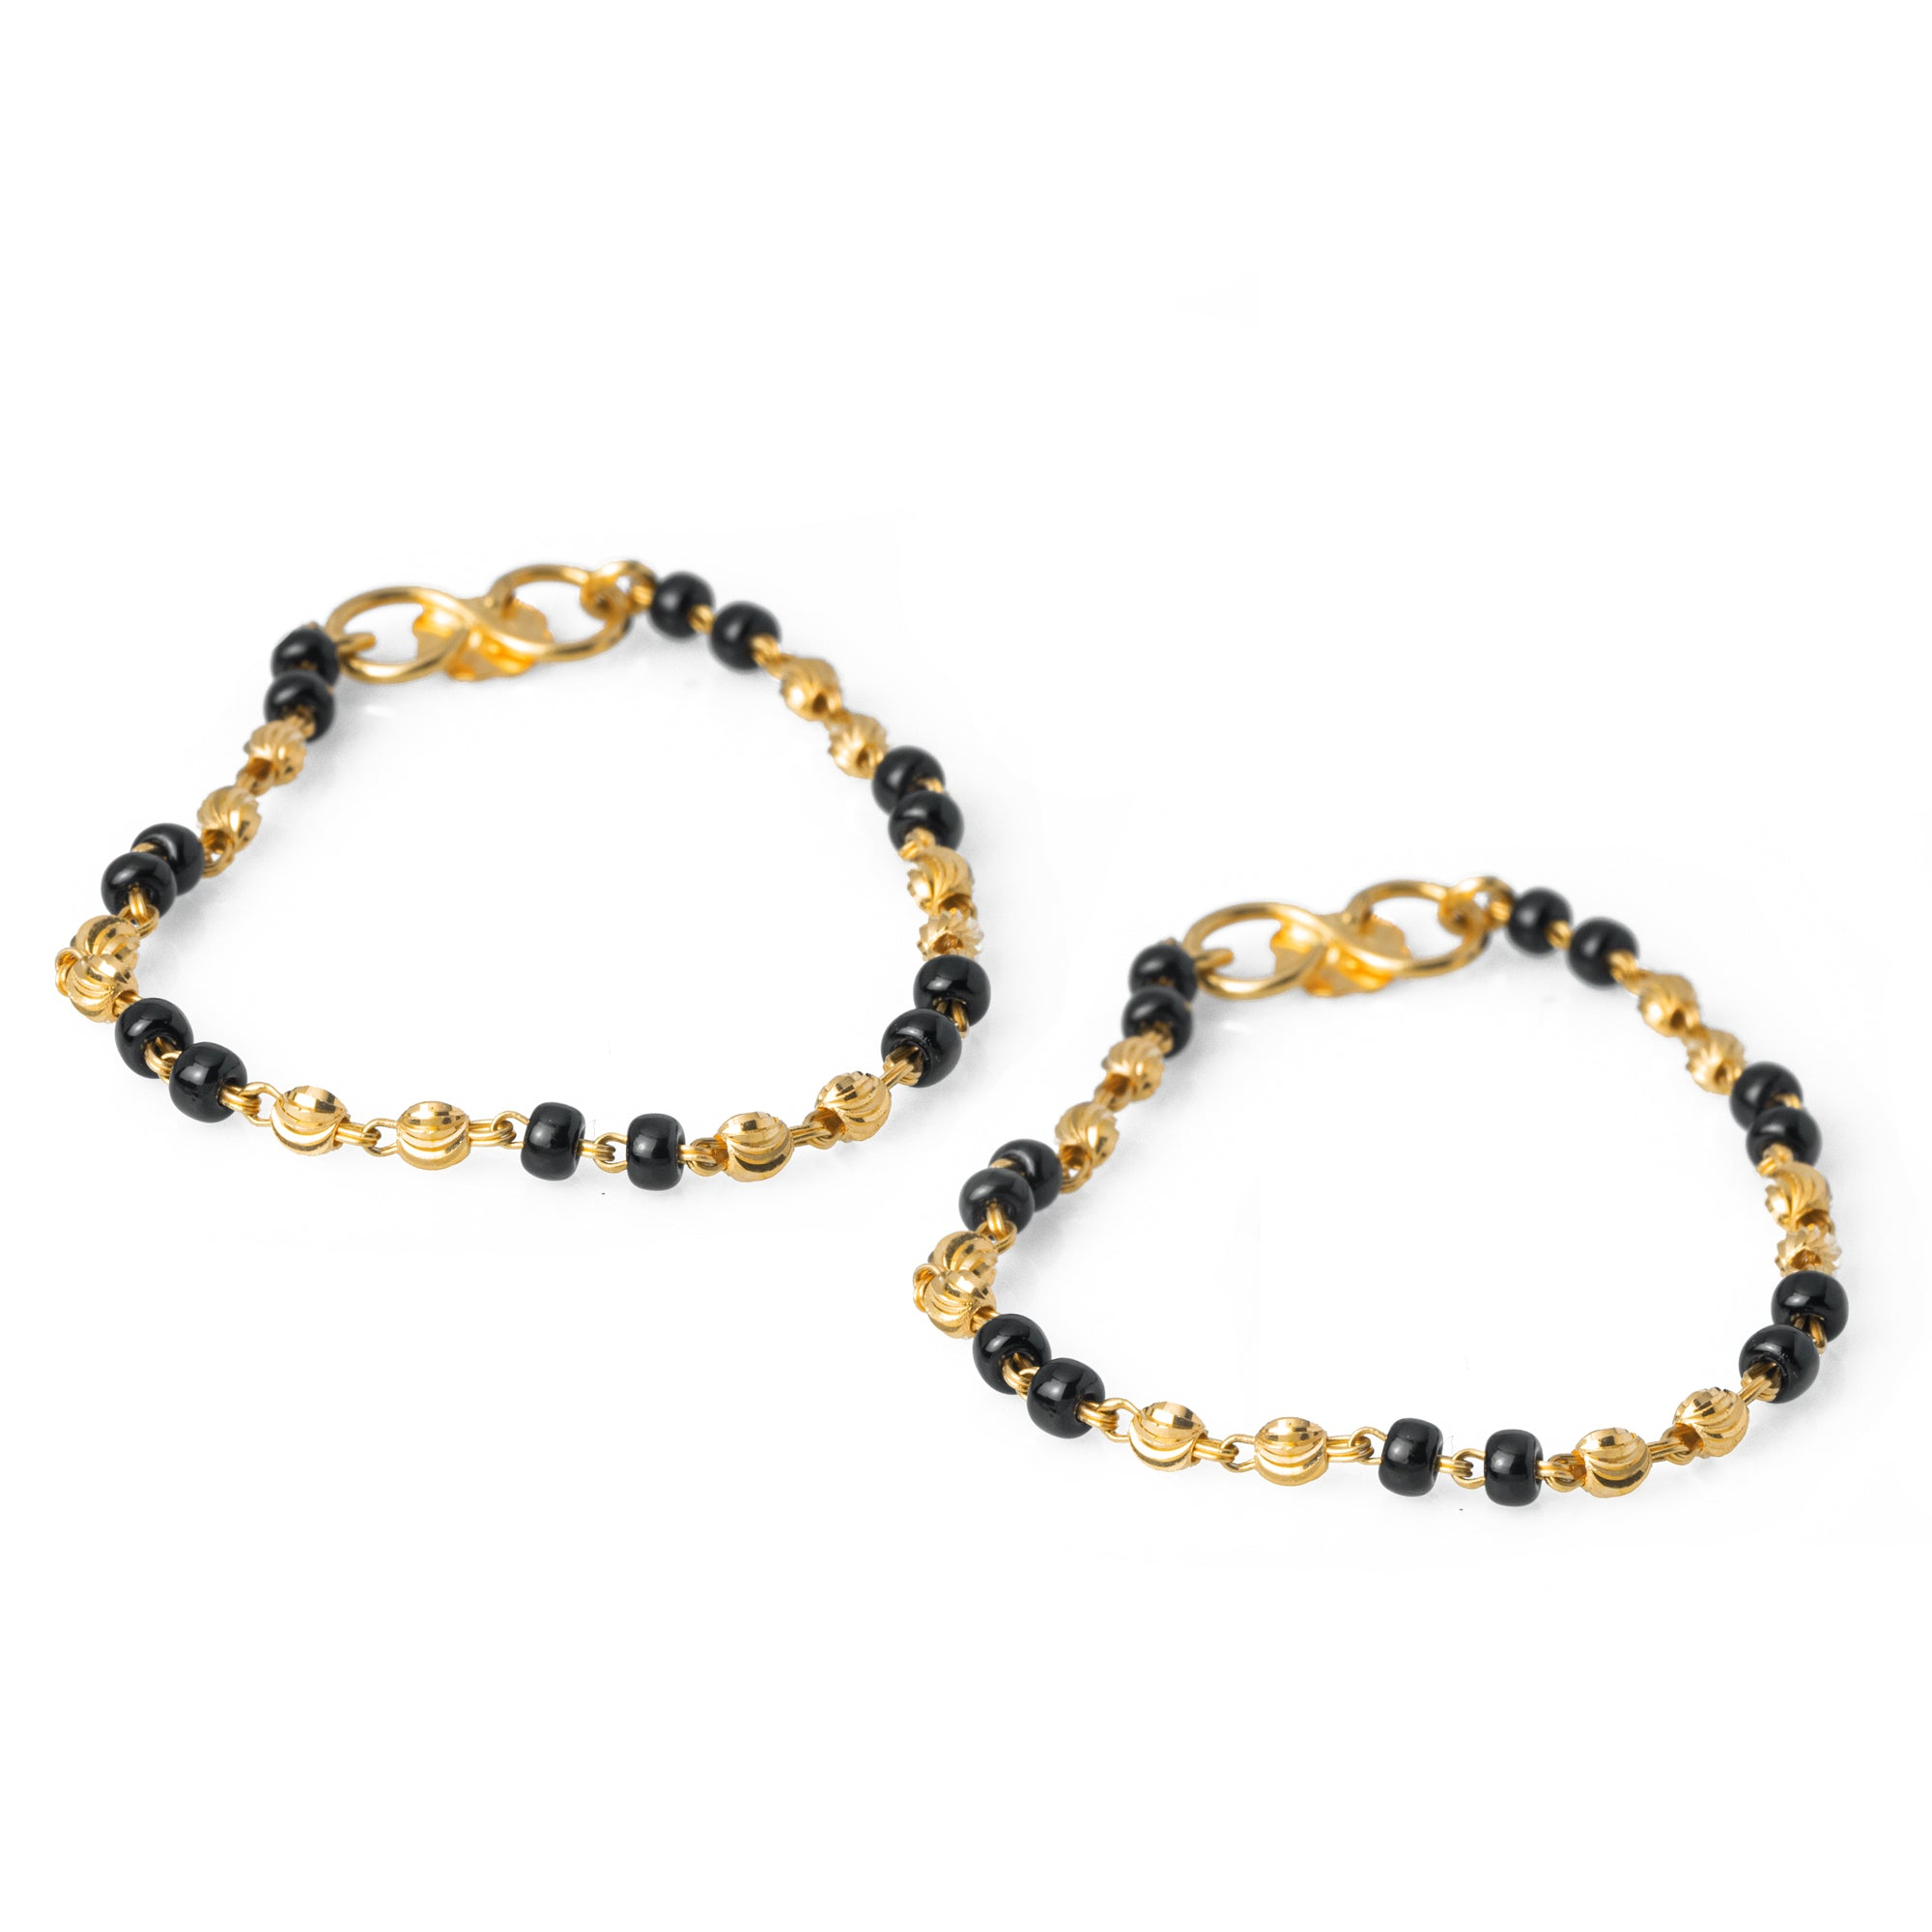 22ct Gold Children's Bracelets with Black Beads CBR-7969